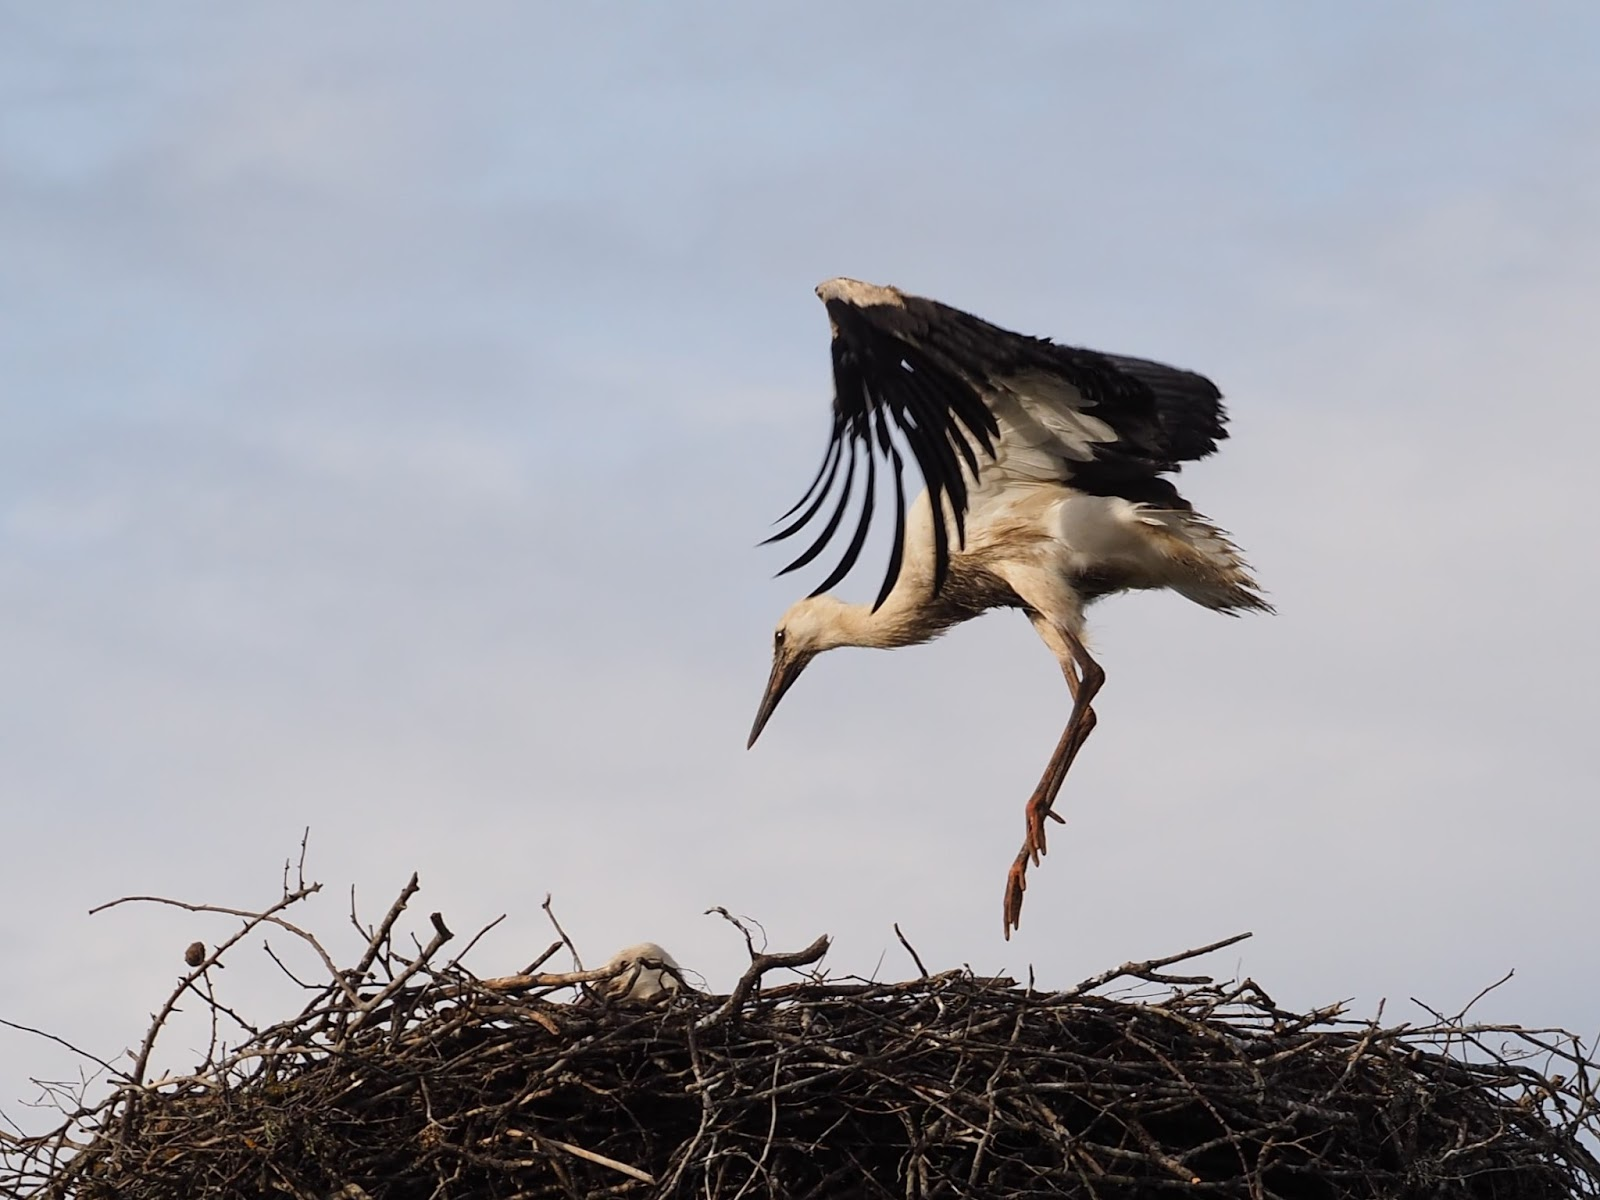 Around the World in 8000 days: Ligatne, Latvia - Storks, Spoons and ...